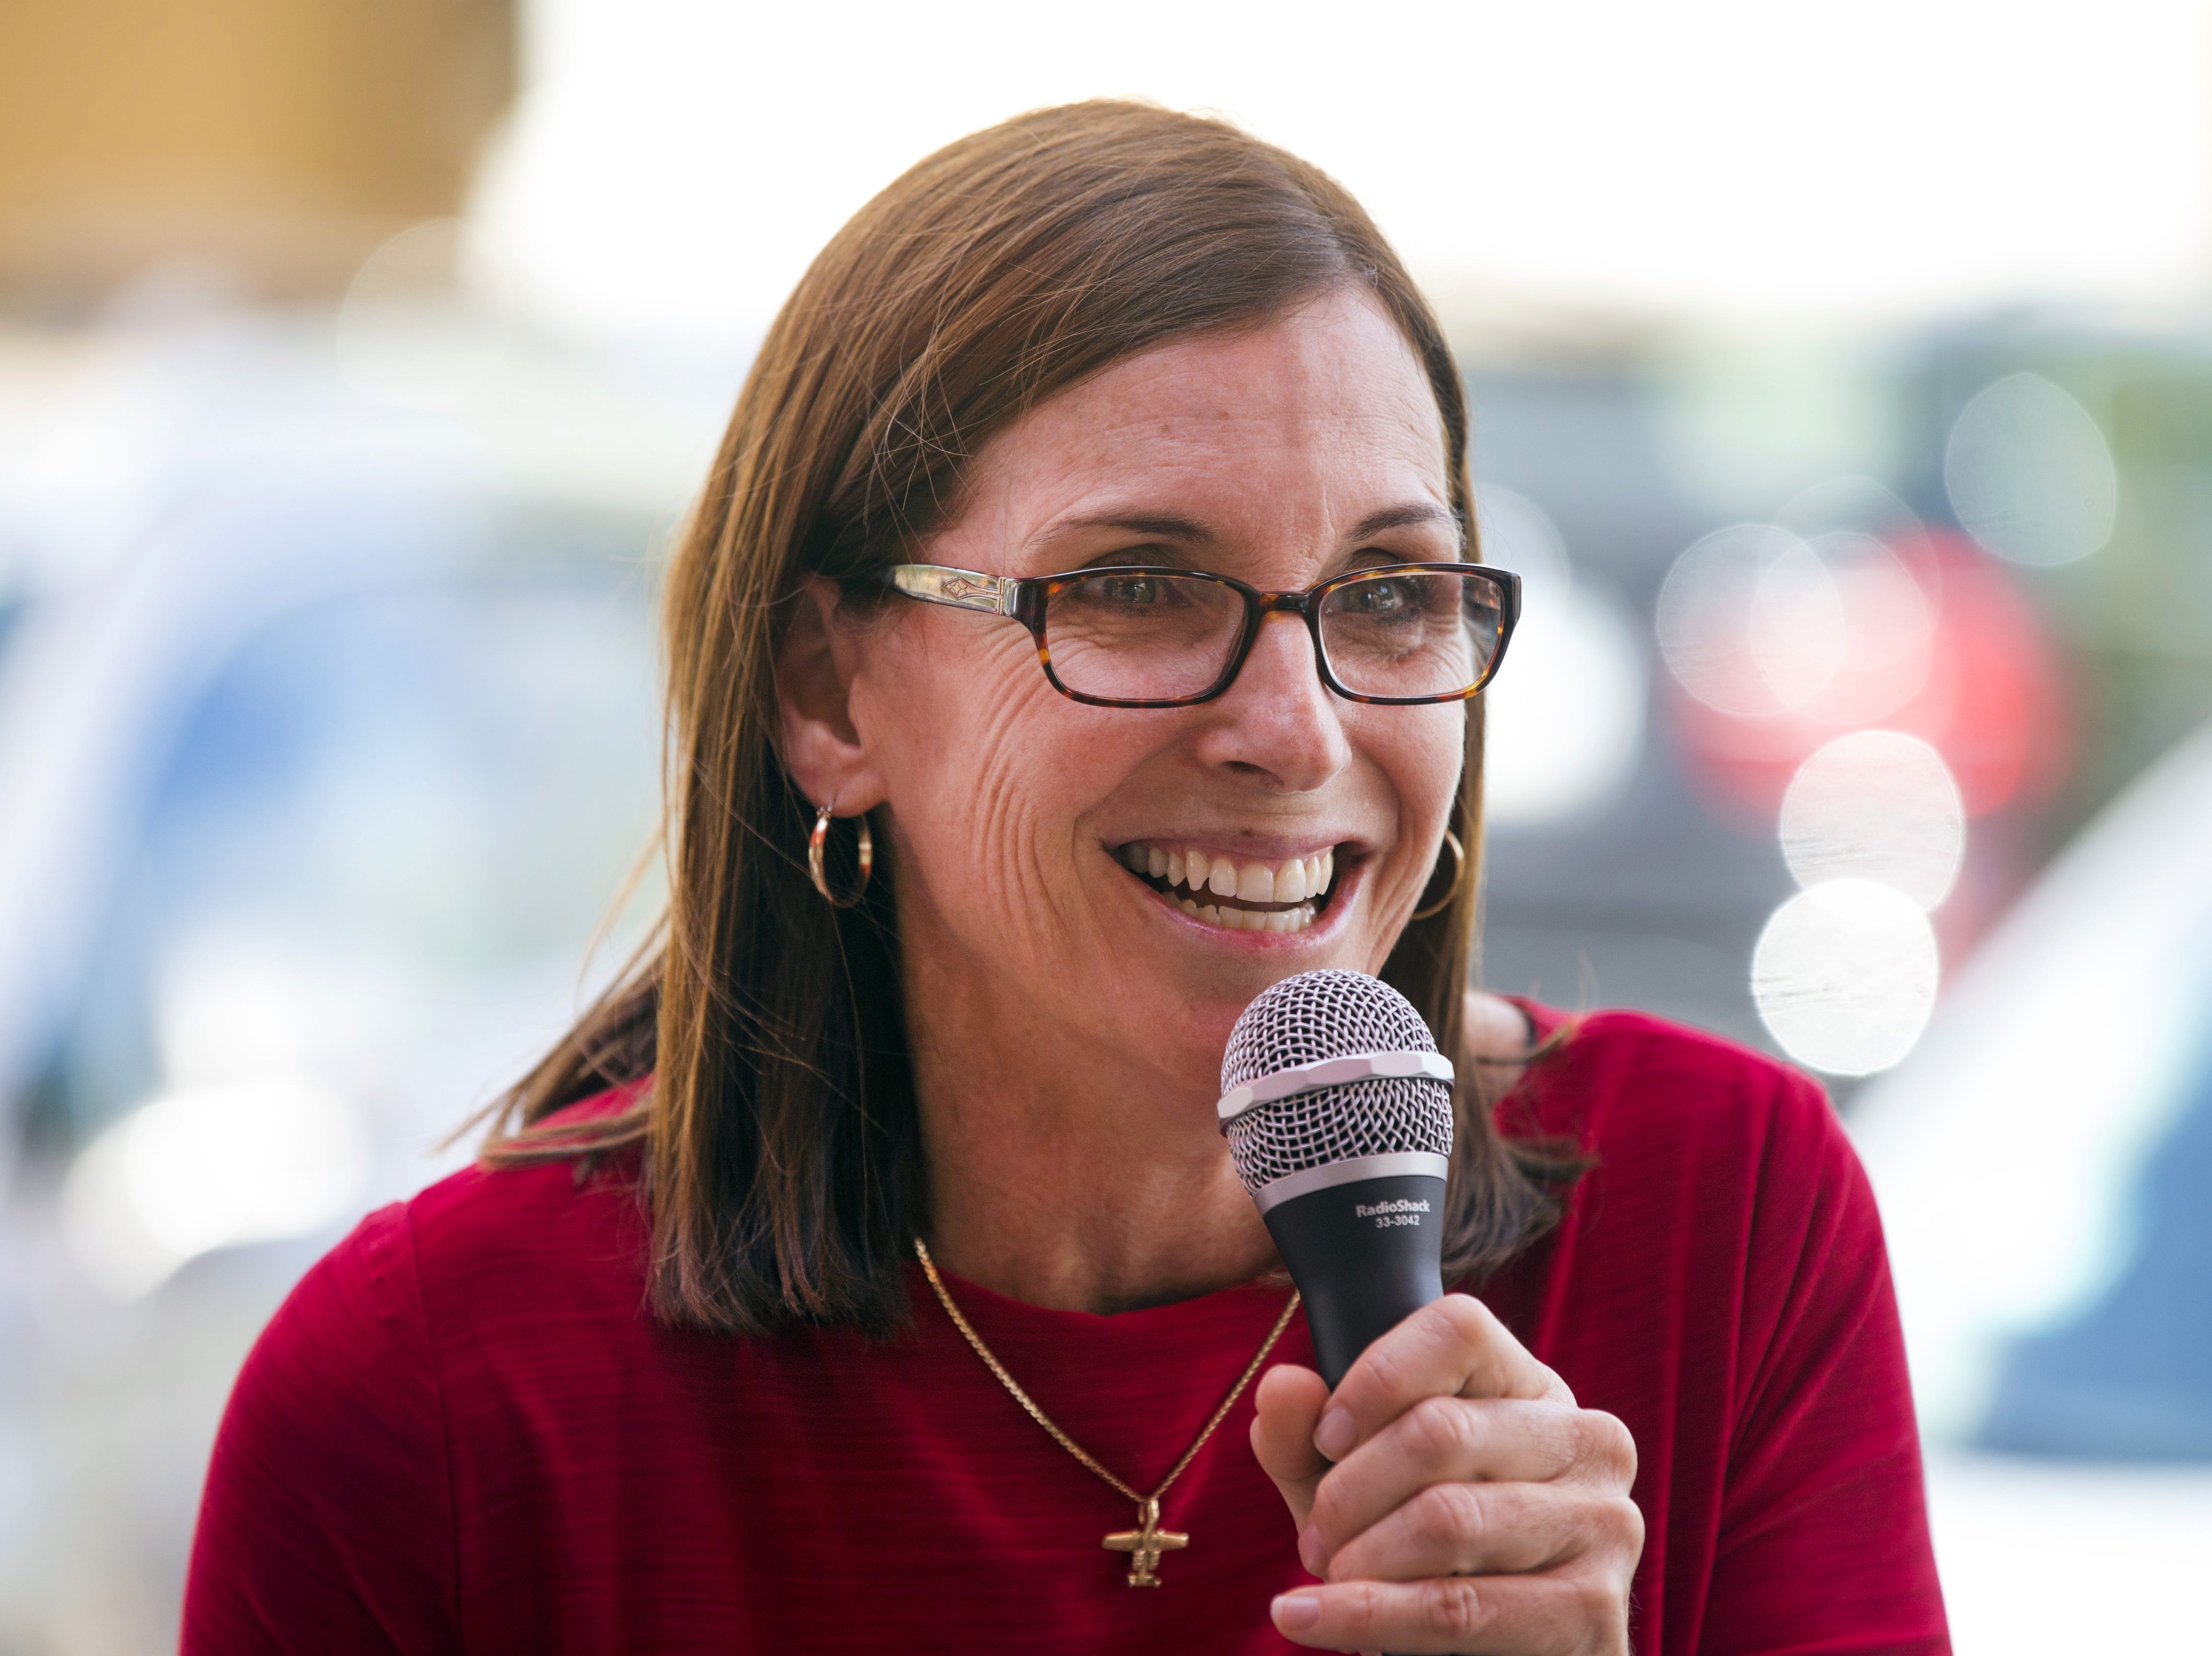 Rep. Martha McSally, a republican vying for her party's U.S. Senate nomination, speaks during campaign pitch to the Palo Verde Republican Woman at Lush Burger in Scottsdale on May 20, 2018.